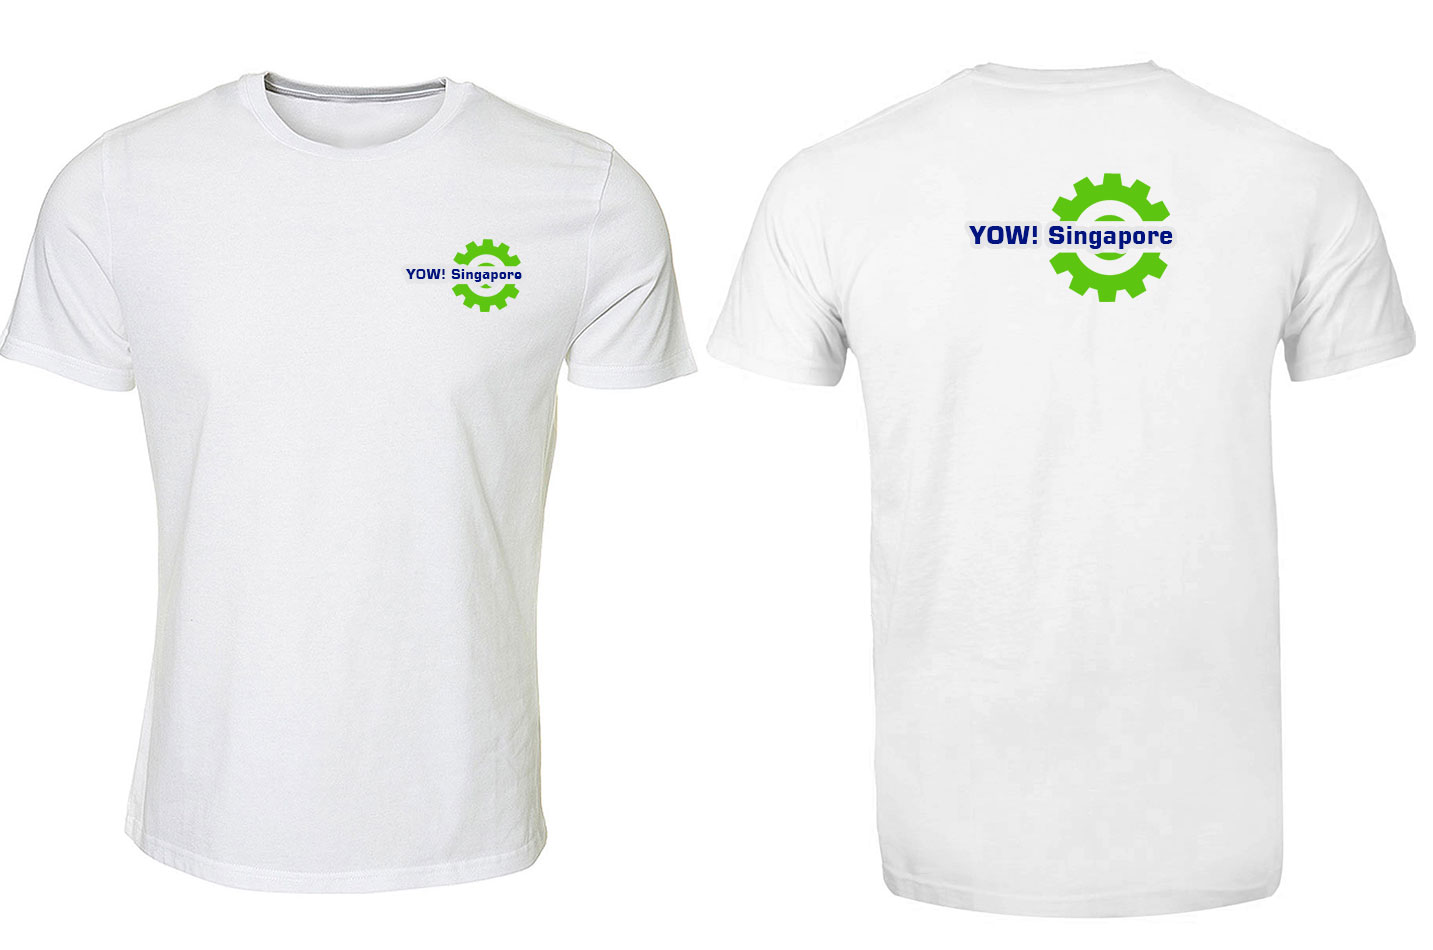 Playful personable information technology t shirt design for Design t shirts online australia